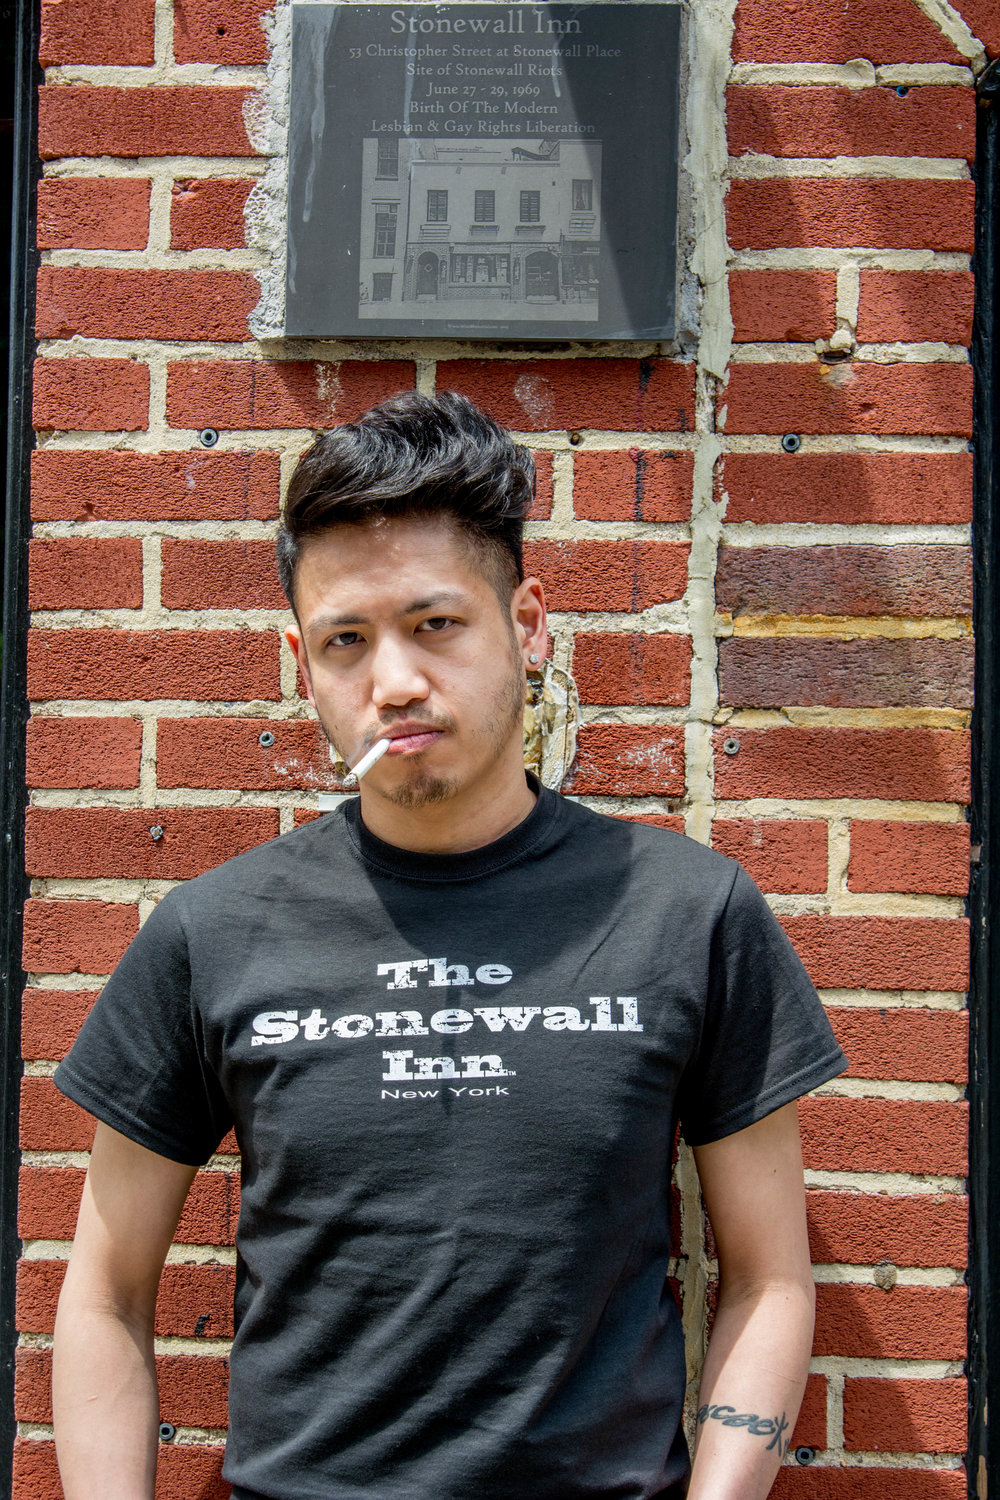 "Paolo     Nickname: Stonewall's Gaysian    Hometown: Queens and Long Island    Turn Ons: Nerds and Geeks    Turn Offs: Attitudes and Rudeness    I went to college for Nursing and now I'm a Bartender! I've worked at the Stonewall since 2009. The Stonewall is my second family and I wouldn't trade them for anything!    I've live in New York basically all my life and don't plan on ever leaving this amazing city. My family and friends are my life, even though I barely see them since all I do is work! Live, Laugh, Love and ""party all the time!""    Works:    Monday- Downstairs Happy Hour- 2 p.m.- 9 p.m.    Saturday- Upstairs Happy Hour- 2 p.m. – 9 p.m.    Saturday- Upstairs- 9:00 p.m.- 4 a.m ."